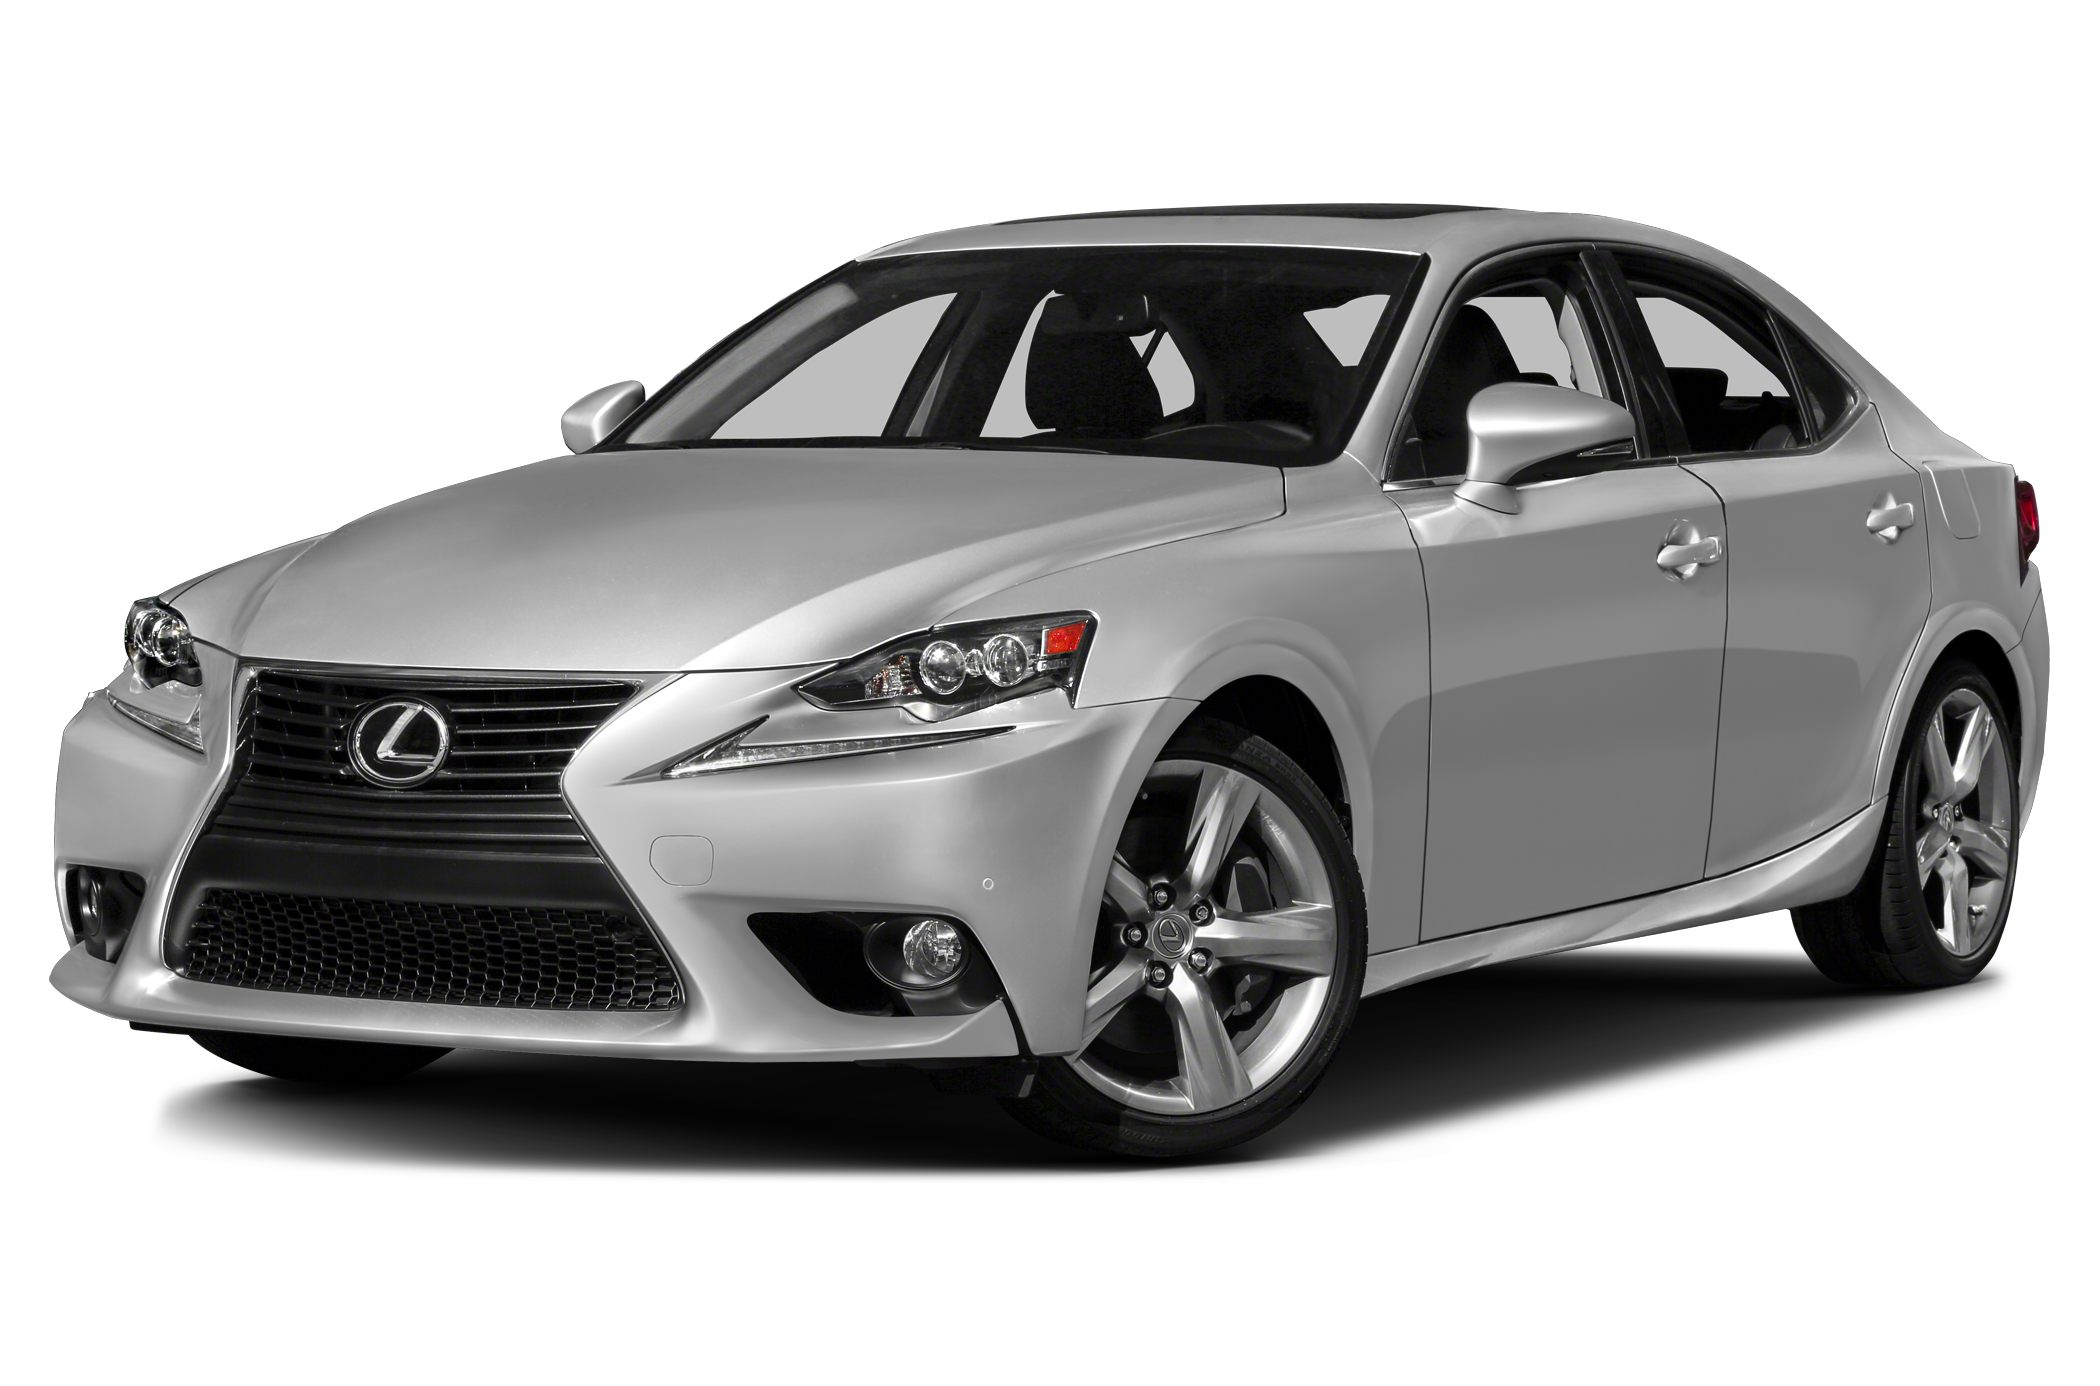 2015 Lexus IS 350 Base Sedan for sale in Greenville for $47,908 with 9 miles.